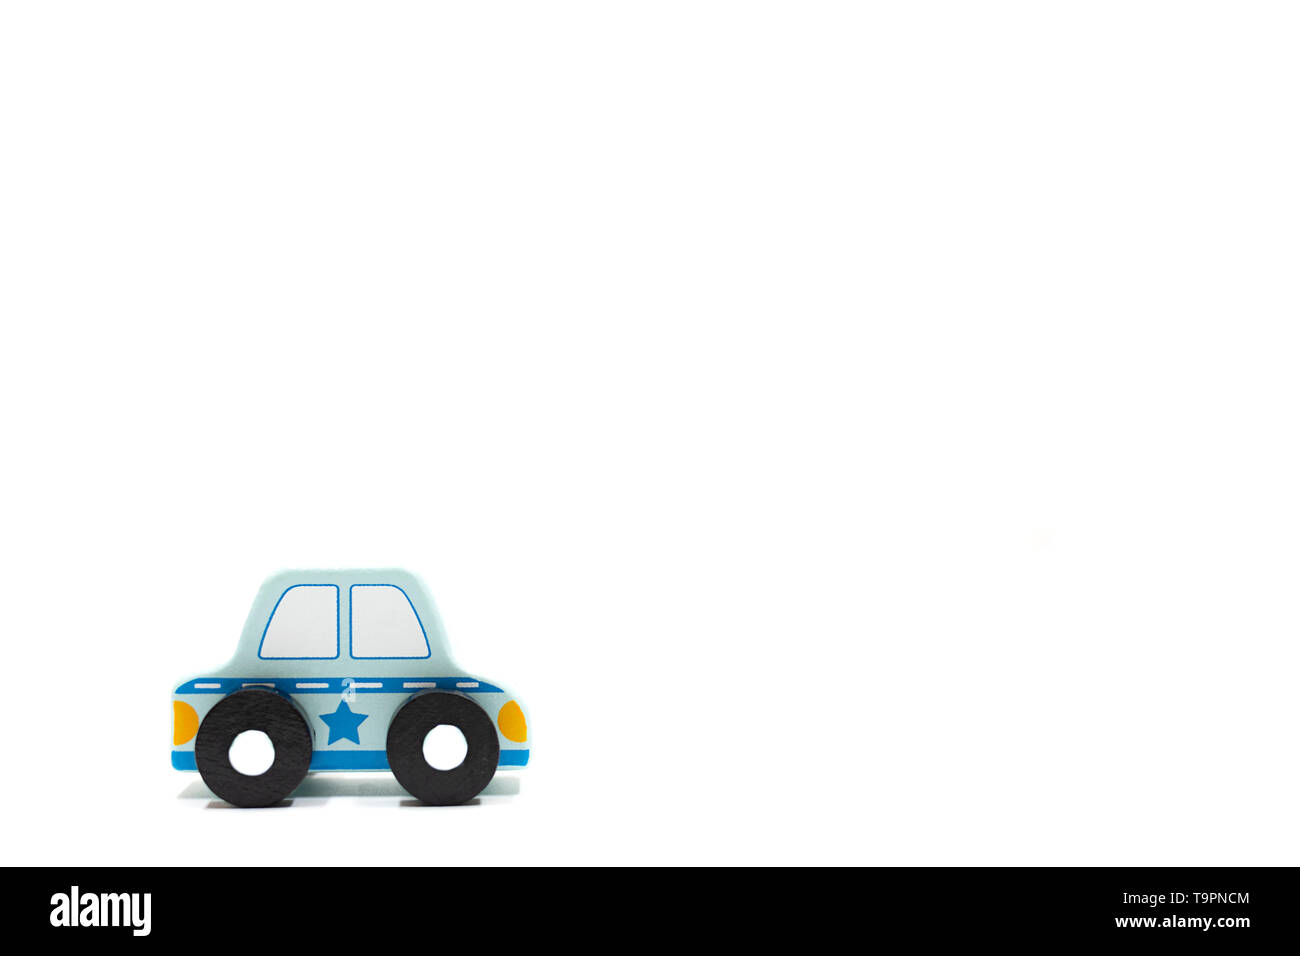 cars on white background. learn how to drive. get the car license. summer purpose learn rules of thumb. car model Stock Photo